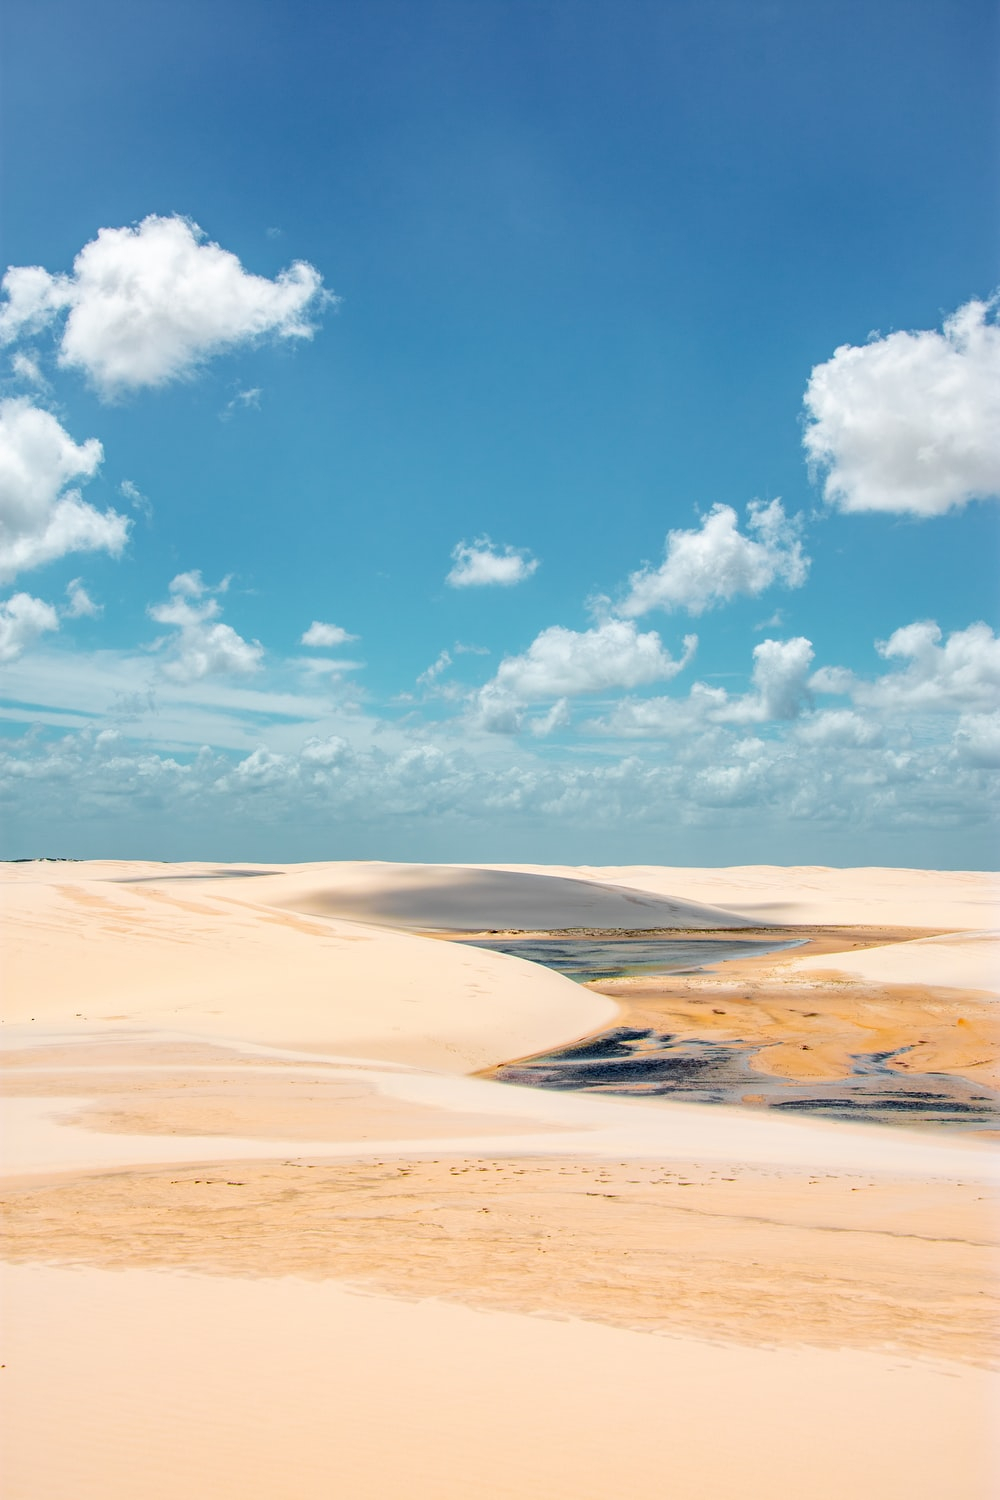 body of water on white sand